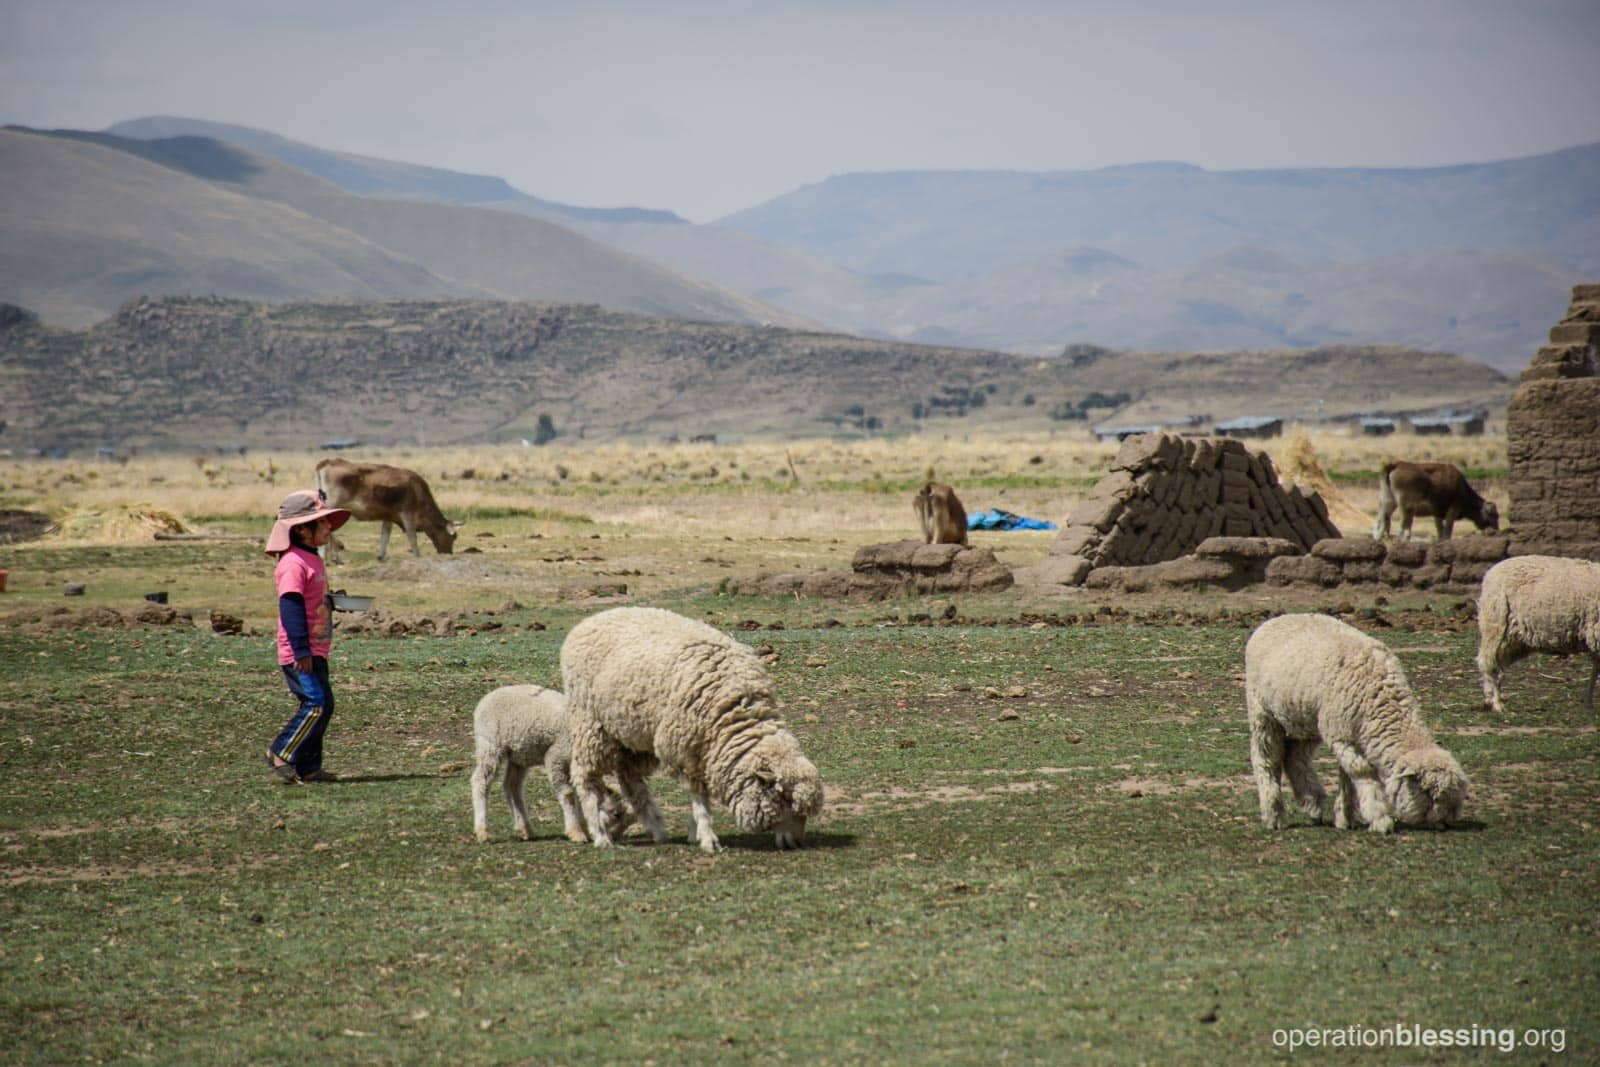 Nicol's remote village features sheep and mountains.